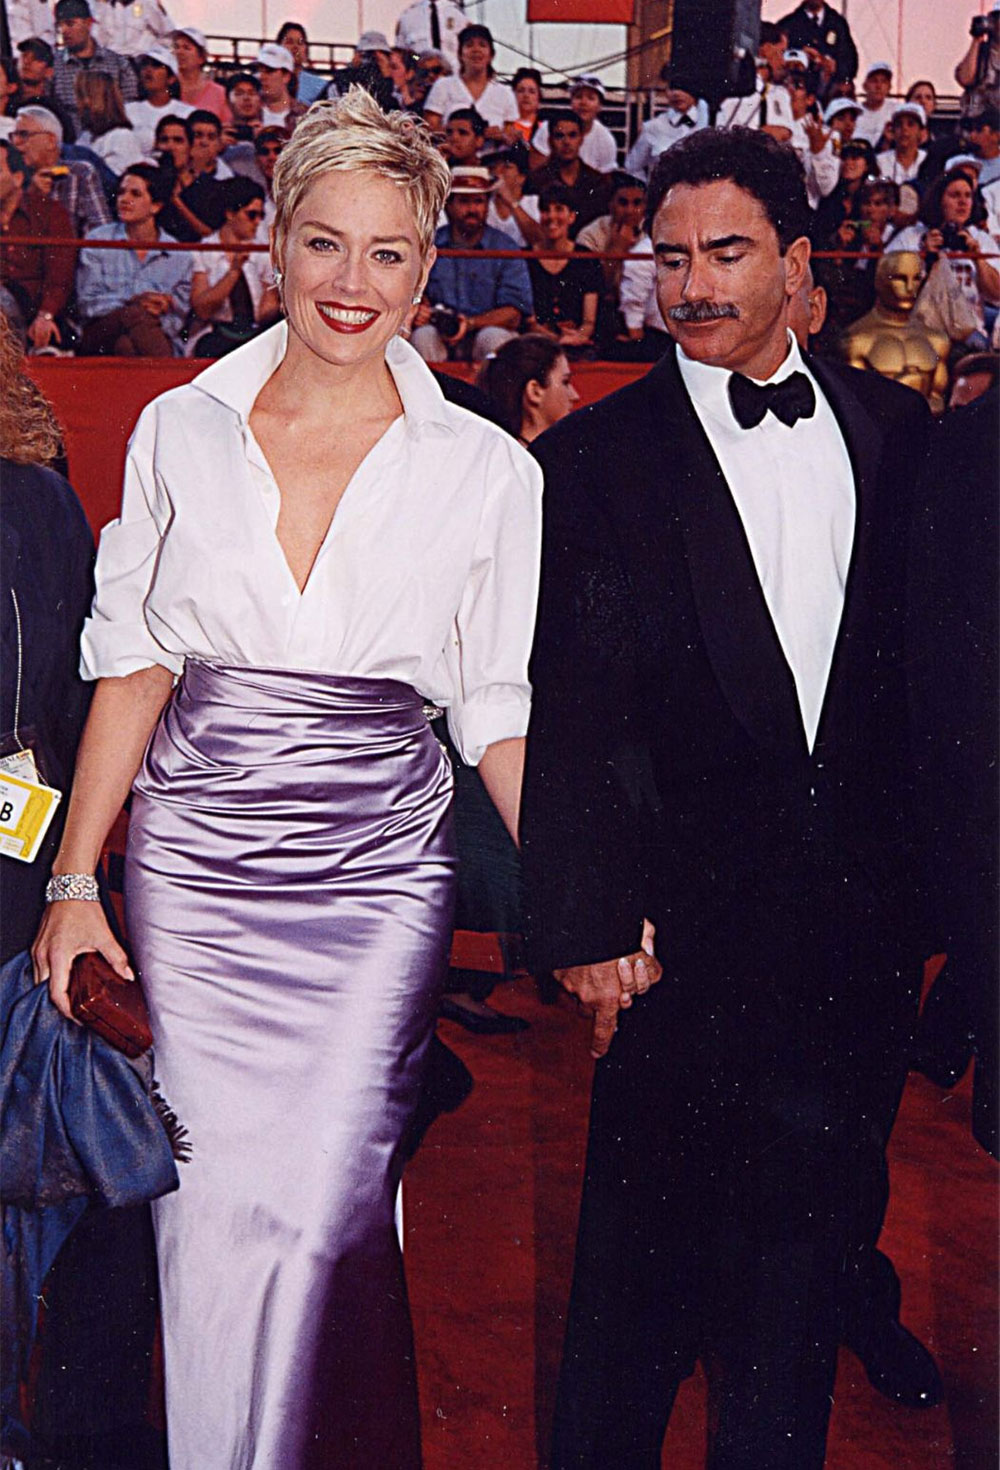 Sharon stone outfit